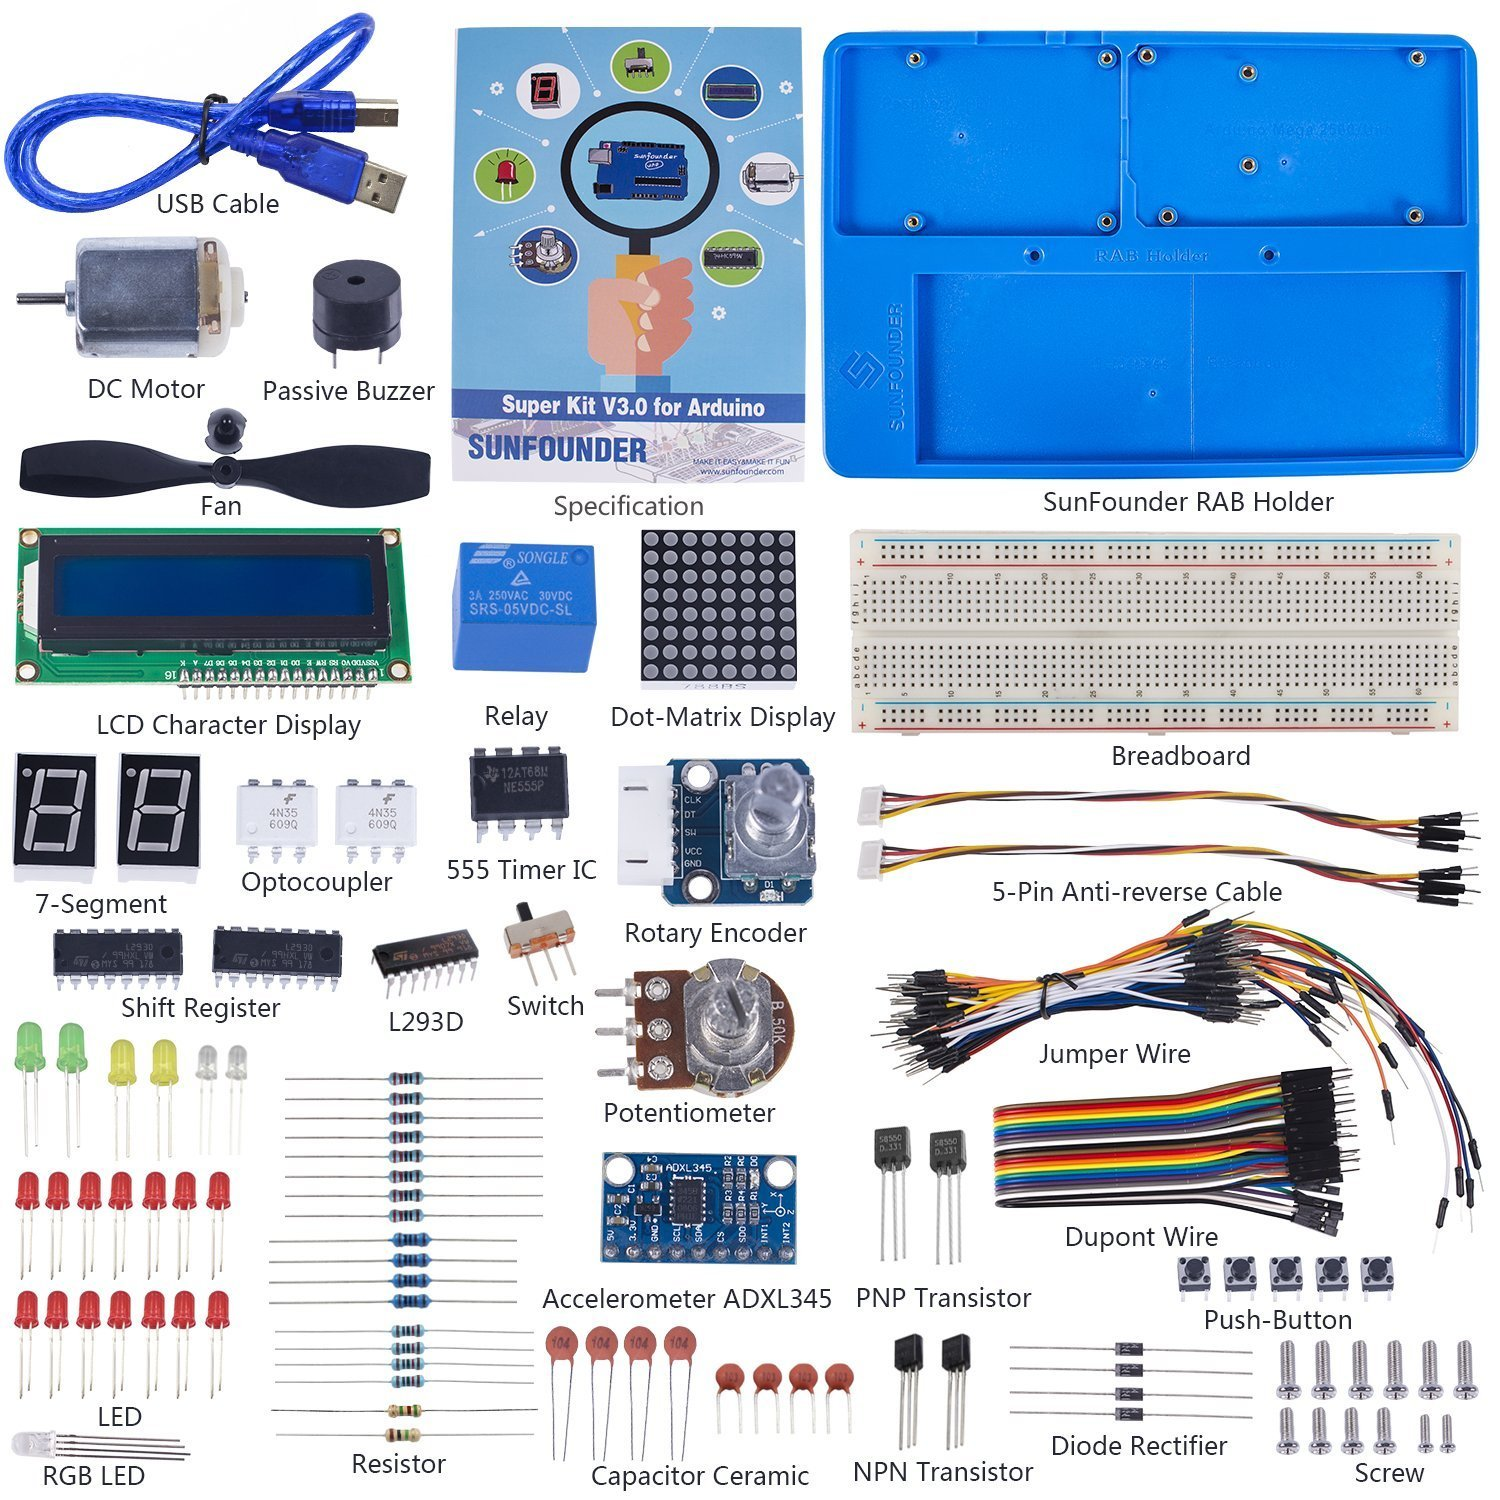 Sunfounder Project Super Starter Kit V30 With Tutorial Need Help My Game Show Buzzer Electronics Forum Circuits Book For Arduino Uno R3 Mega 2560 Computers Accessories